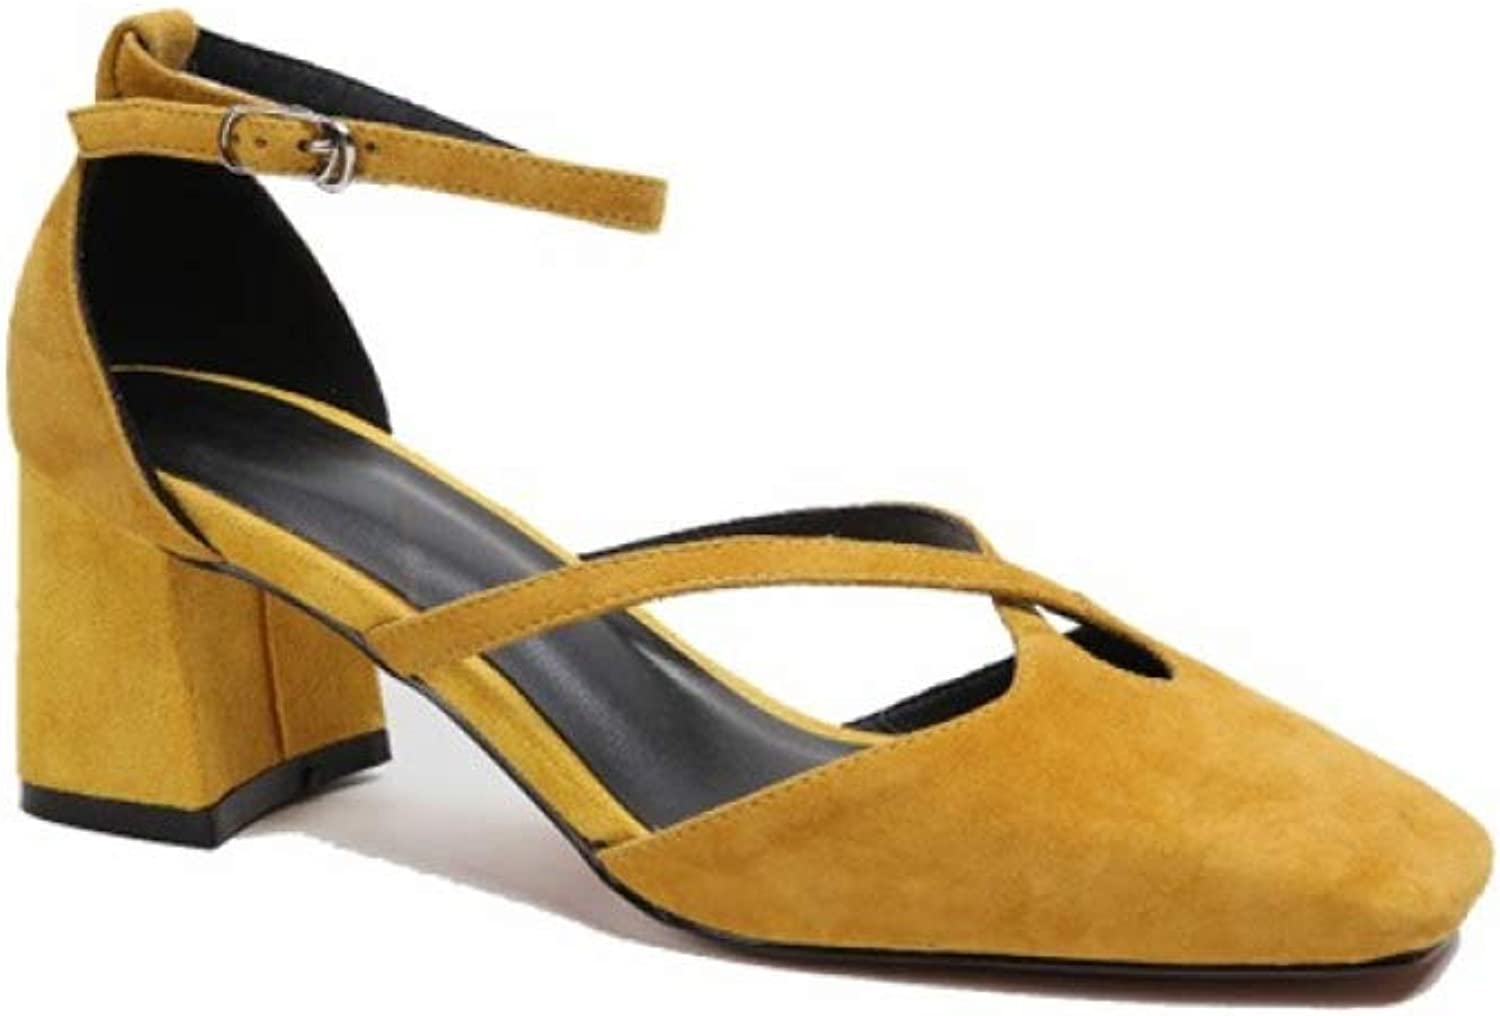 T-JULY Cross-Tied Summer Sandals Genuine Leather Elegant Casual Solid Buckle Strap Yellow Heels Square Toe Womens Sandals